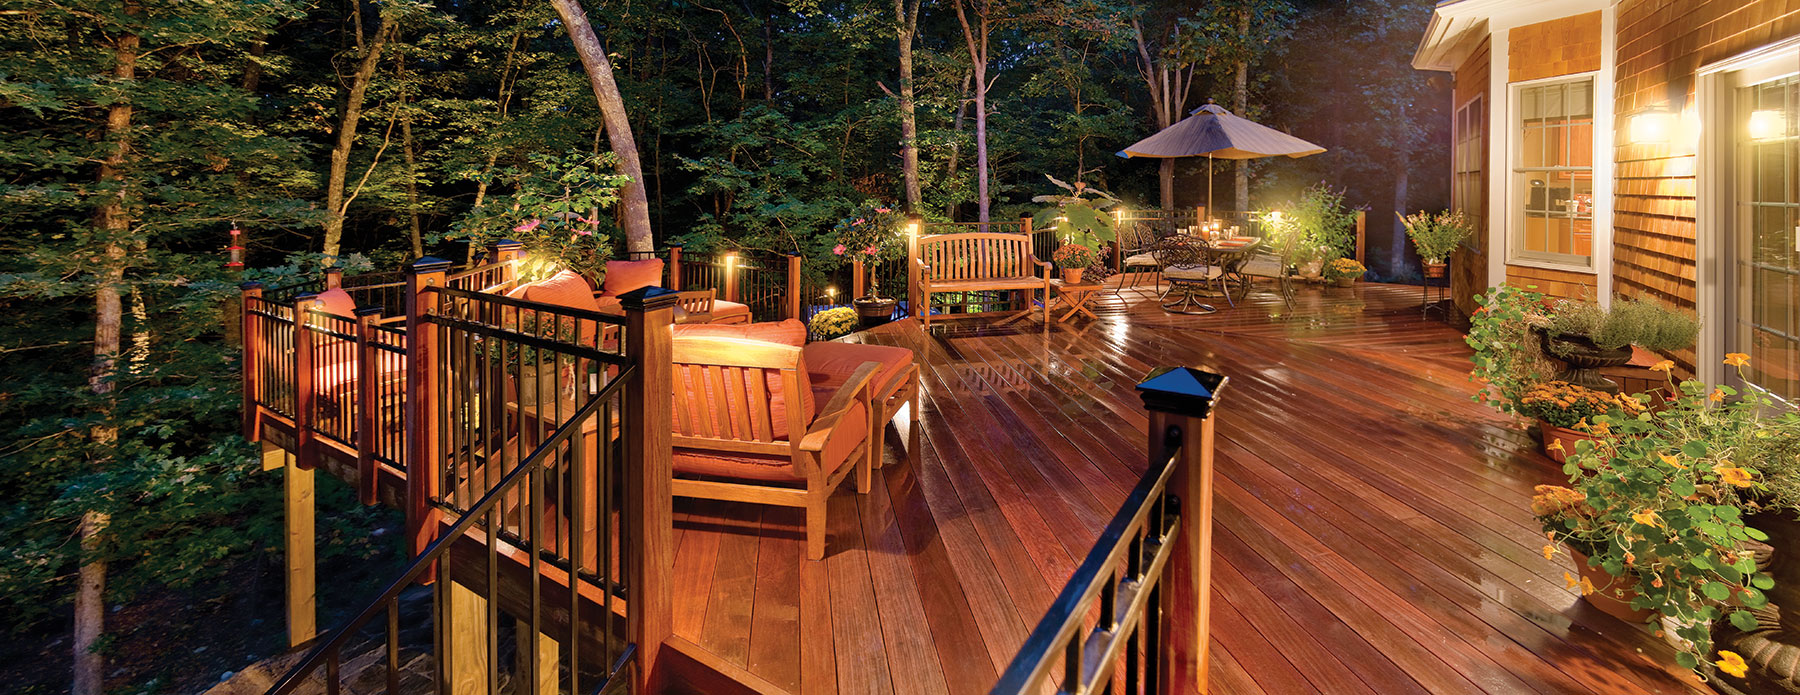 Columbia sc deck lighting to extend your time outdoors this fall columbia sc deck lighting to extend your time outdoors this fall aloadofball